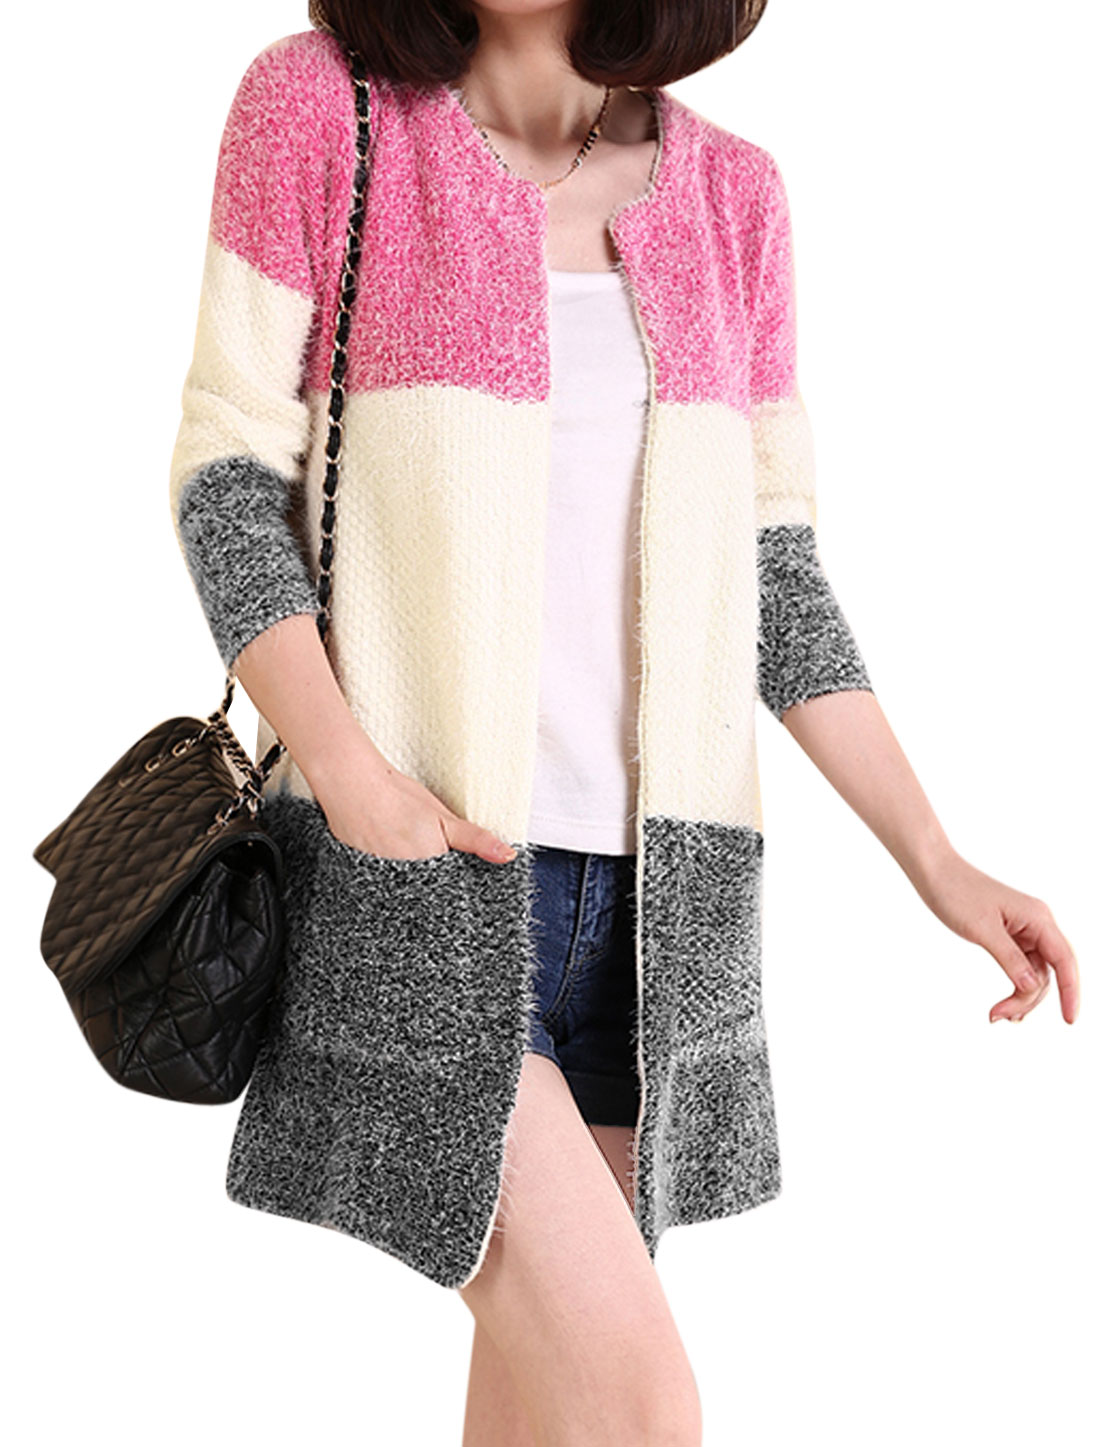 Lady Contrast Color Vertical Pockets Long Sweater Cardigan Deep Pink XS